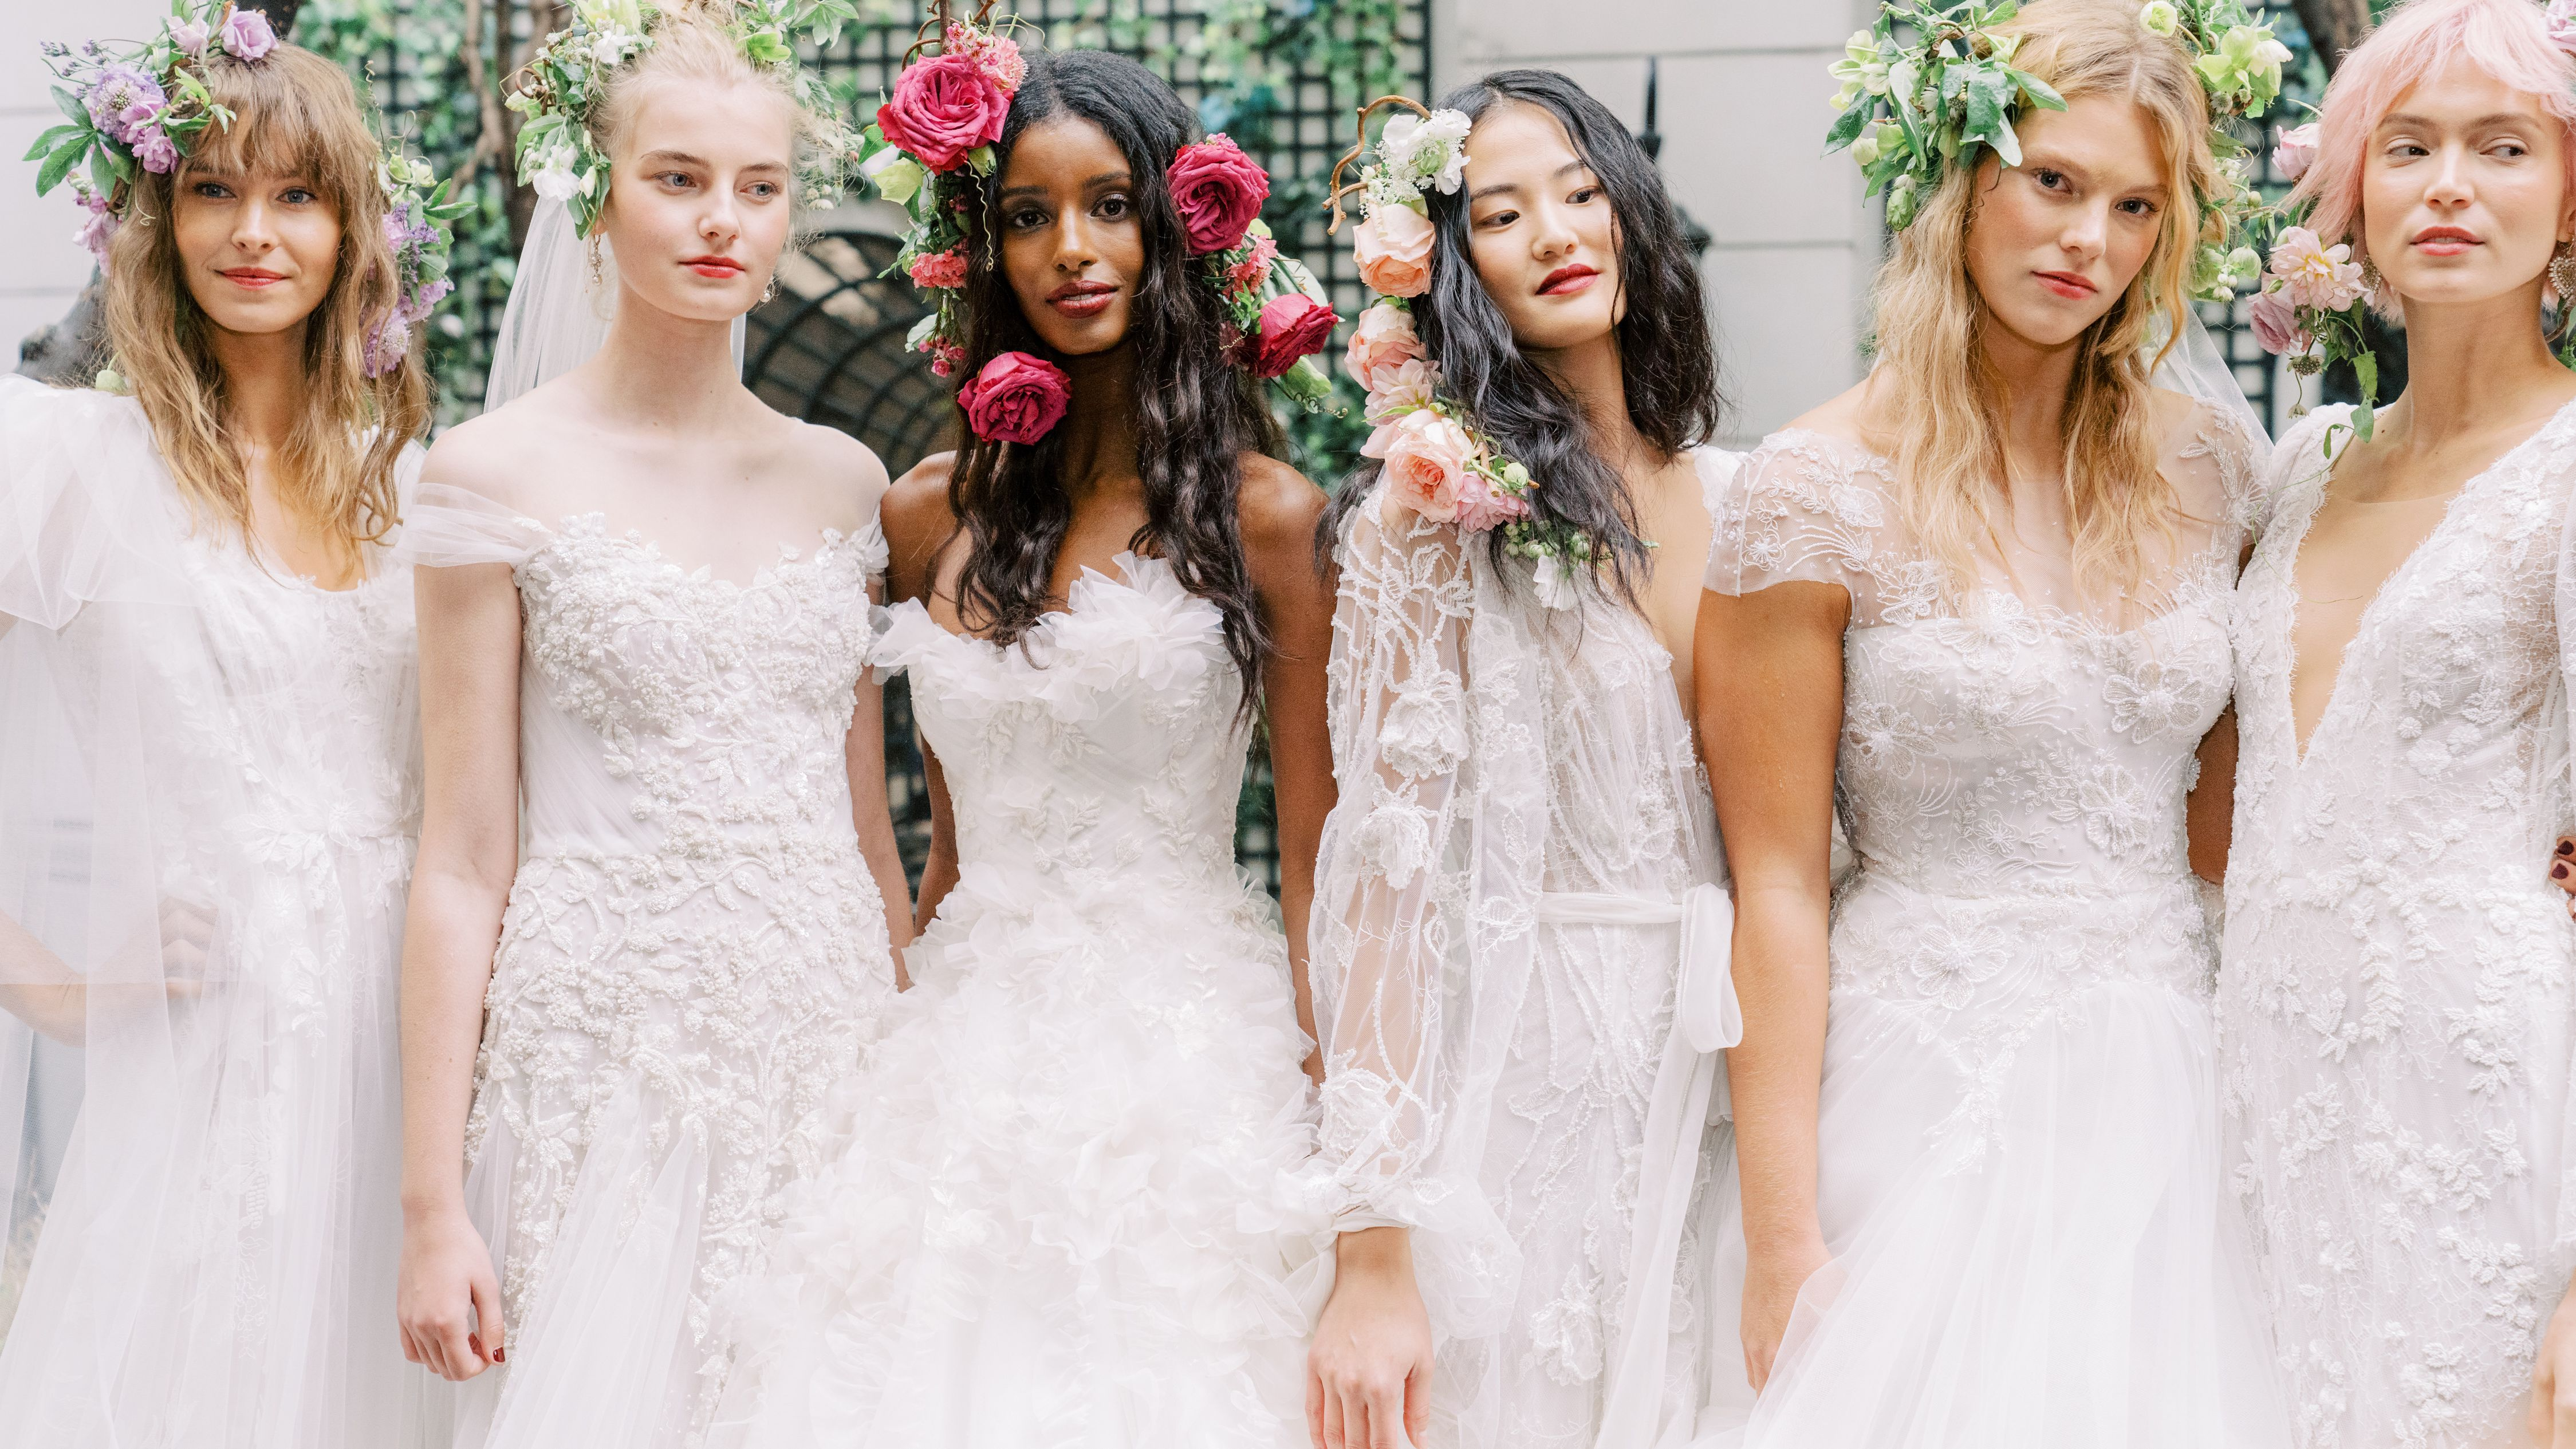 7 Wedding Hairstyle And Makeup Trends 2020 Brides Need To Know